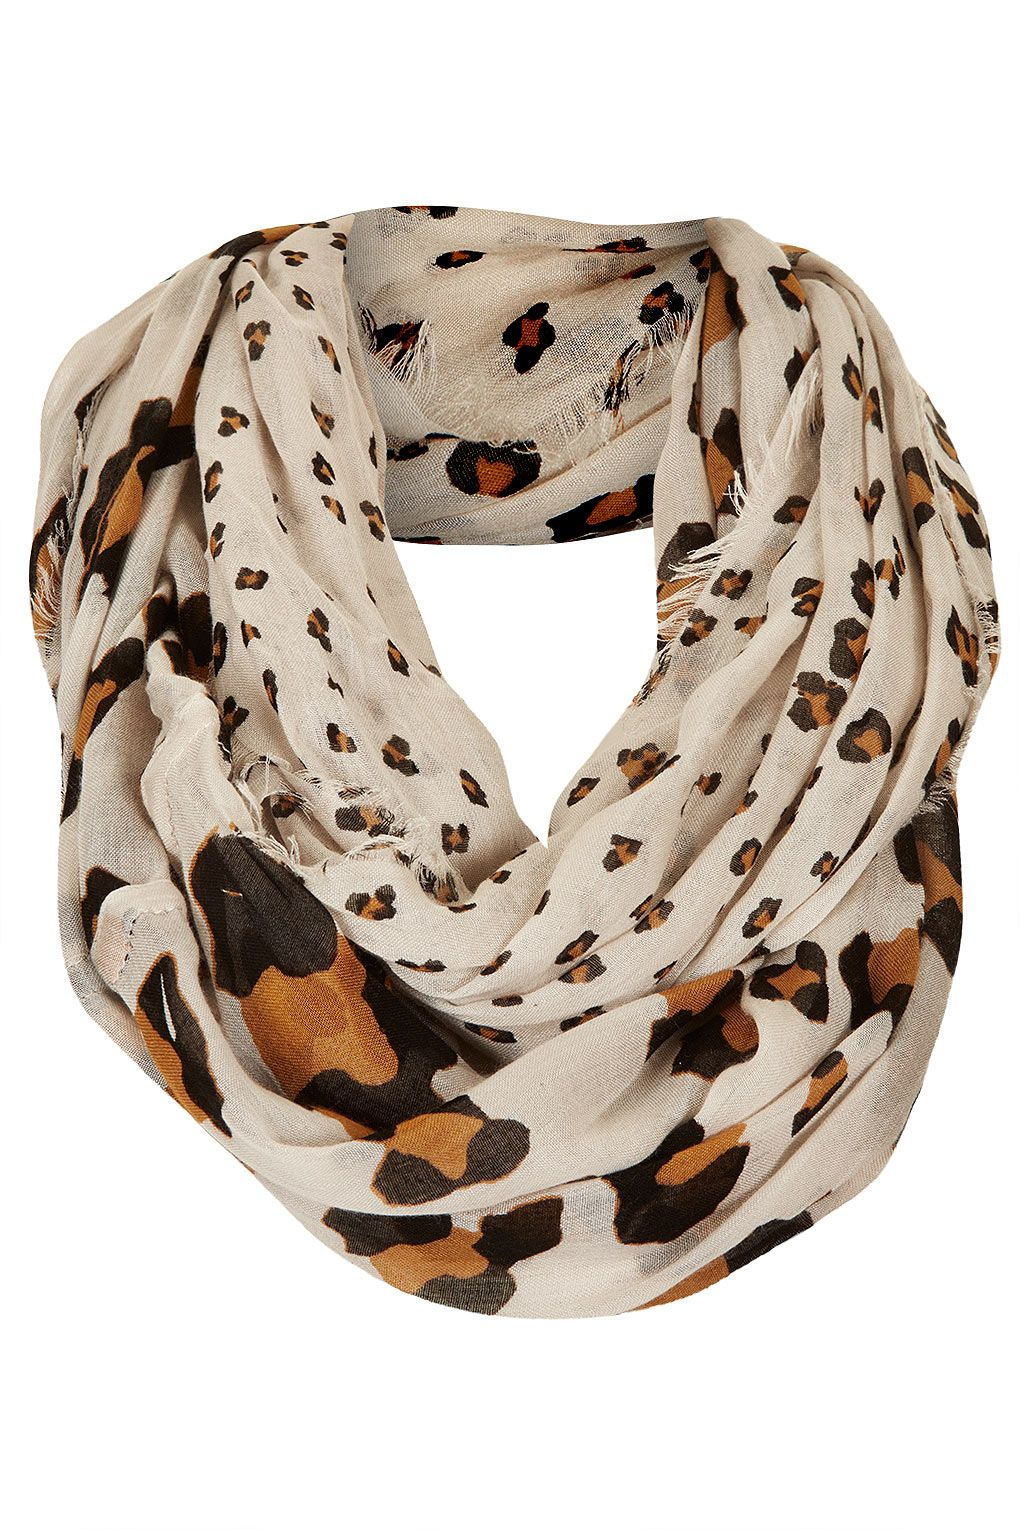 0ea1ba5422149 topshop leopard print scarf | Accessories in 2019 | Fashion, Animal ...